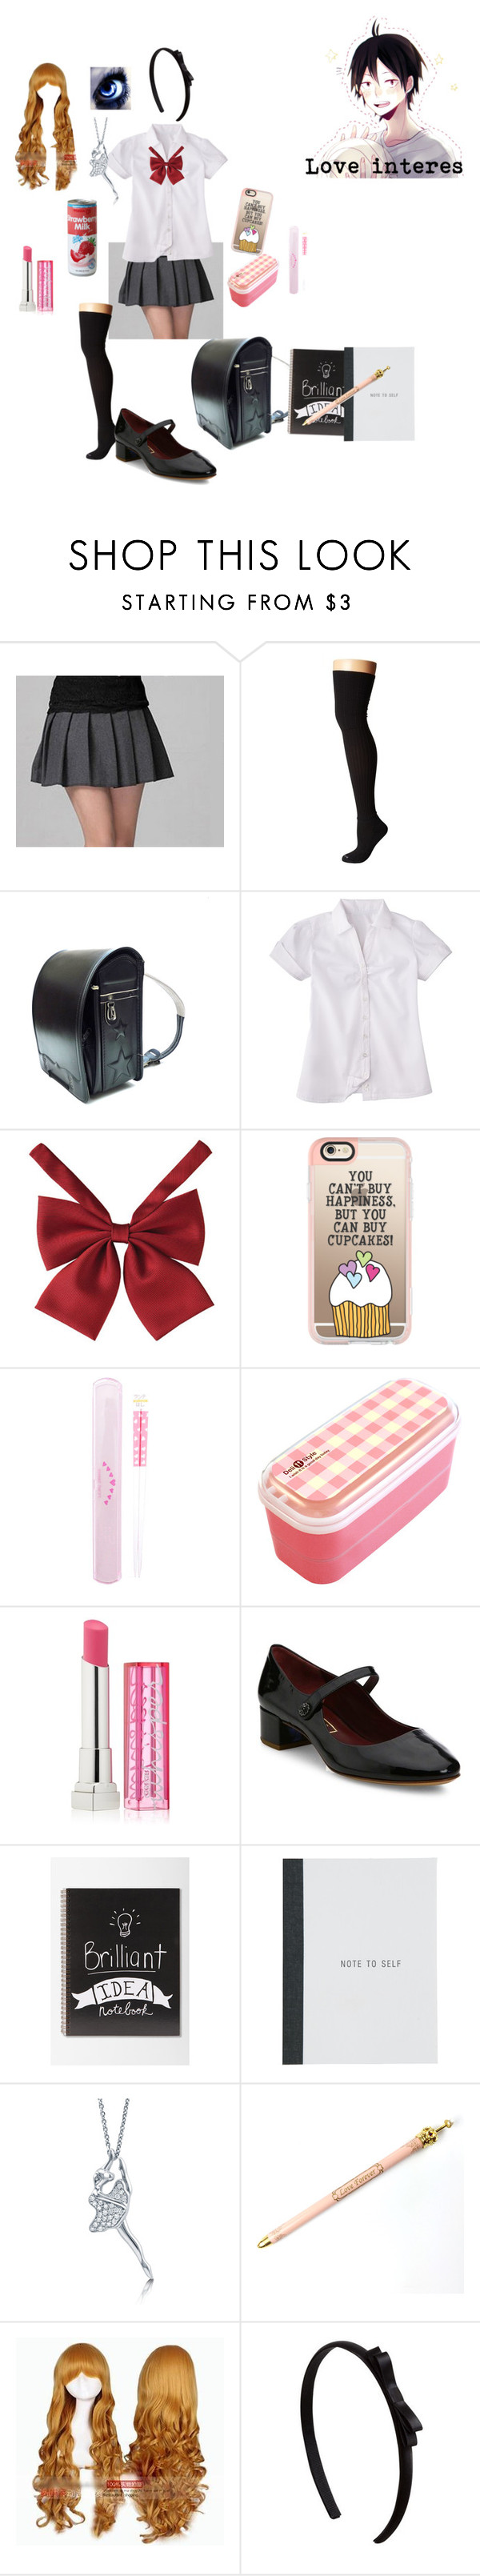 """""""Haikyuu oc #2"""" by bec1995 ❤ liked on Polyvore featuring Bootights, French Toast, Casetify, Maybelline, Marc Jacobs, Tadashi, BERRICLE and Coshome"""